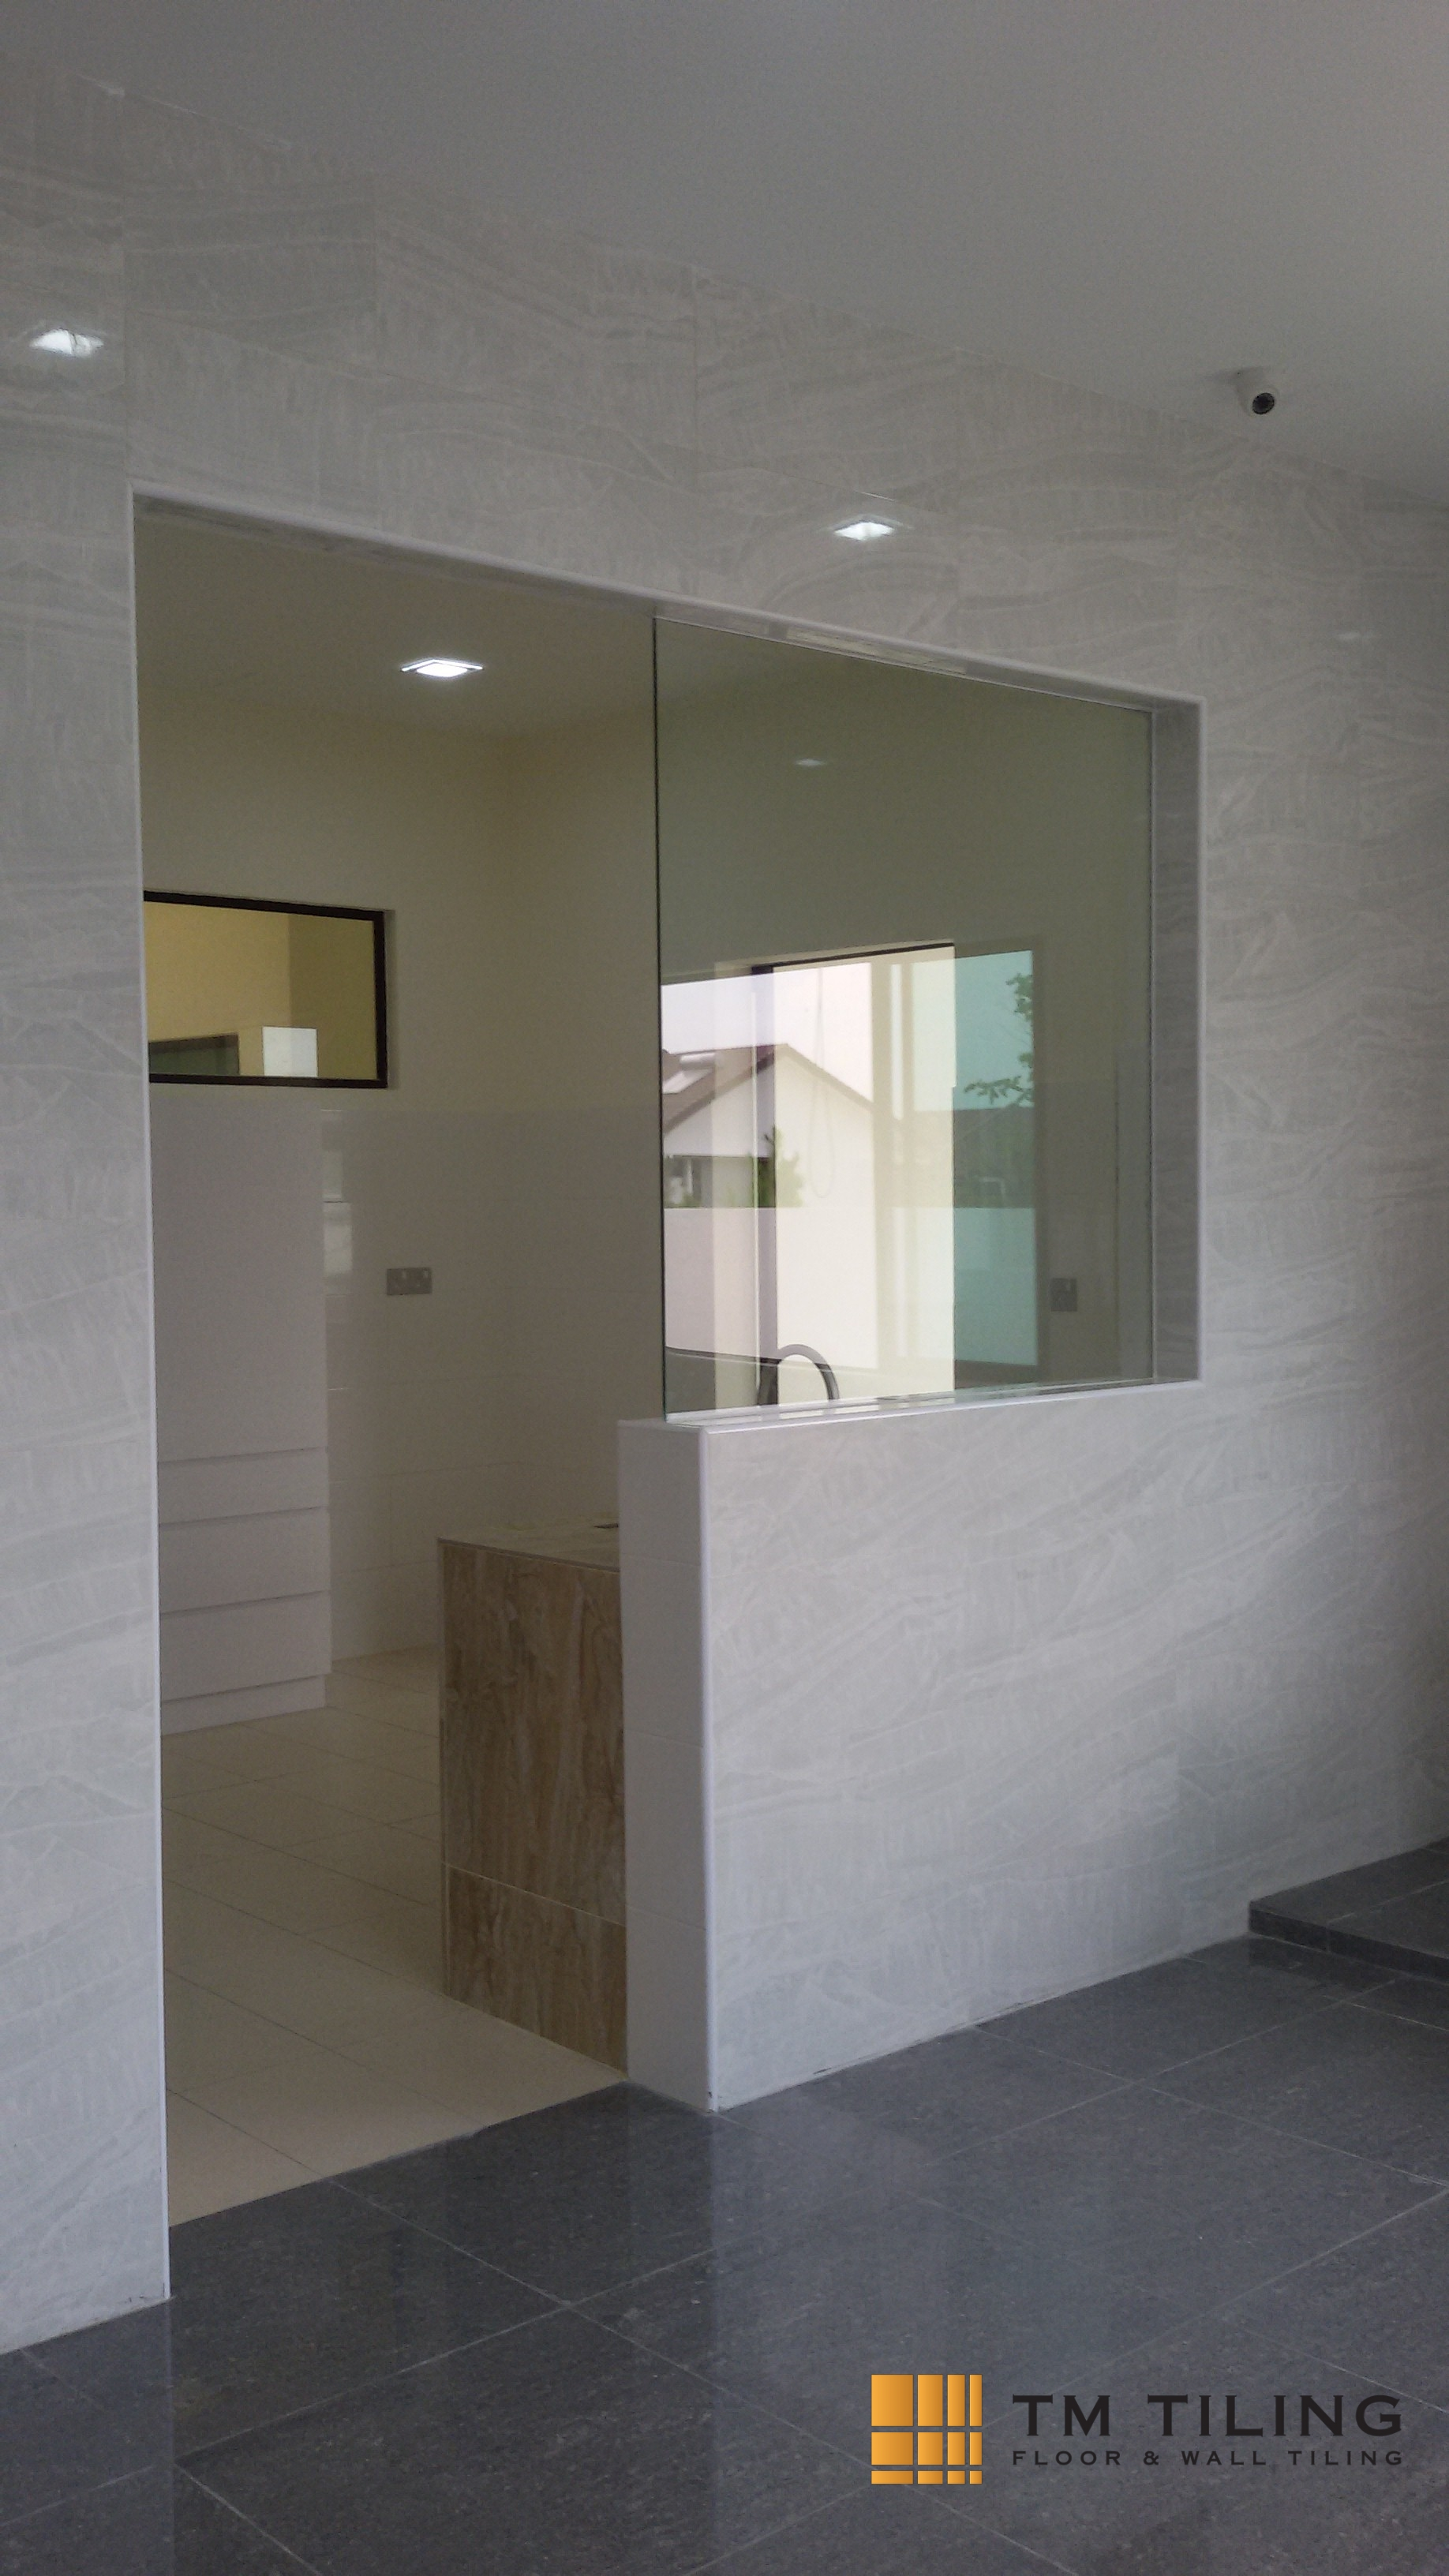 Home - TM Tiling Contractor Singapore - #1 Direct Tiling Contractor